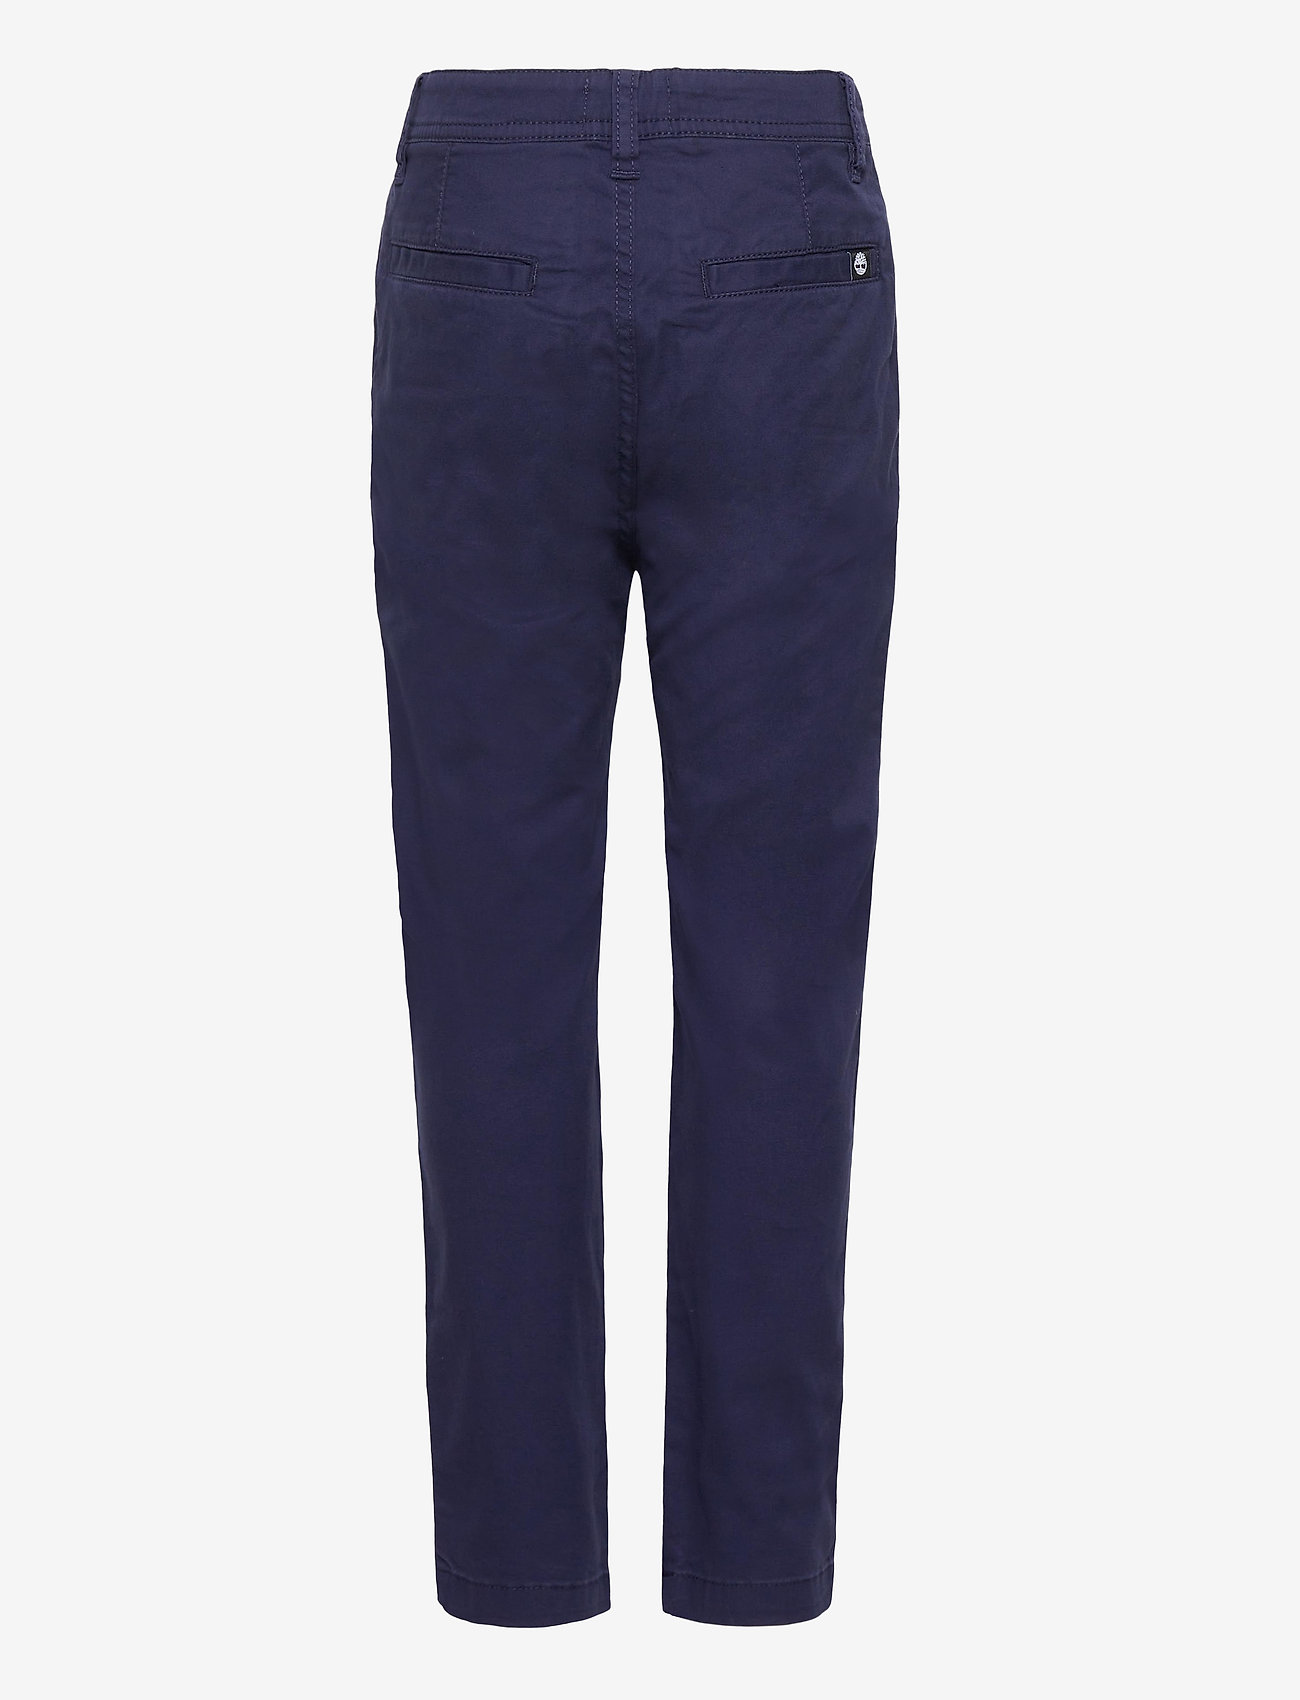 Timberland - TROUSERS - trousers - navy - 1